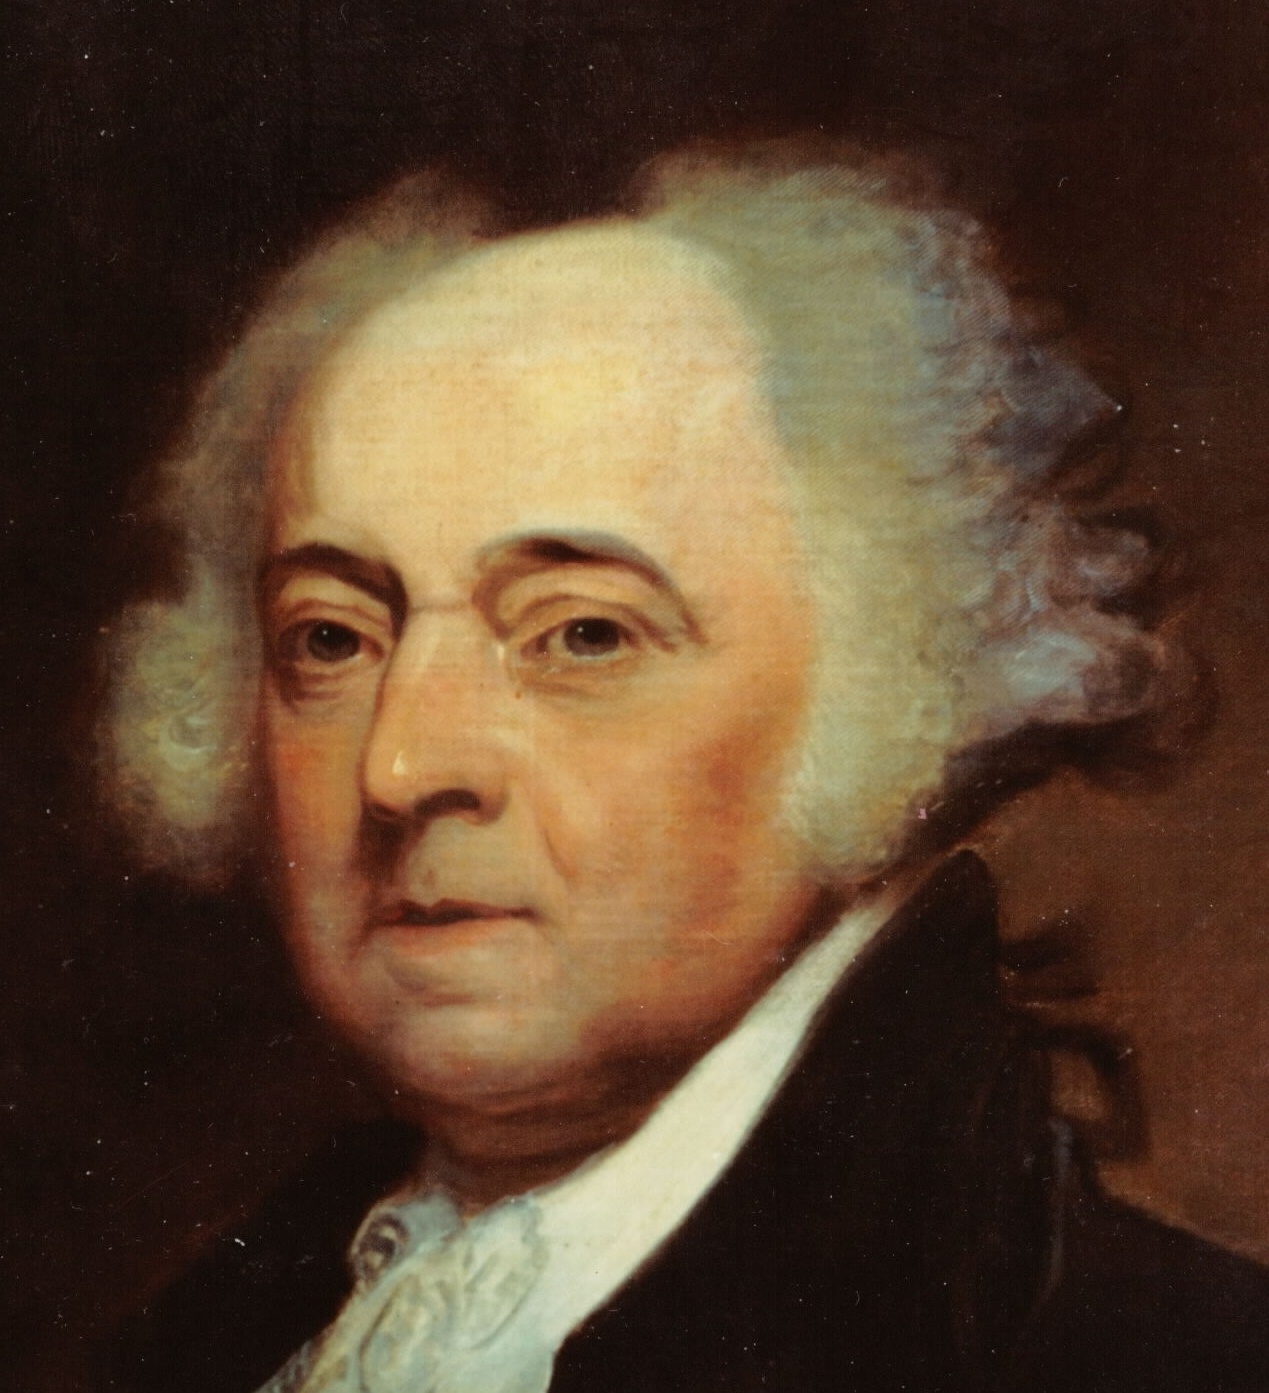 external image US_Navy-031029-CLOSEUP-N-6236G-001_A_painting_of_President_John_Adams_(1735-1826),_2nd_president_of_the_United_States,_by_Asher_B._Durand_(1767-1845).jpg